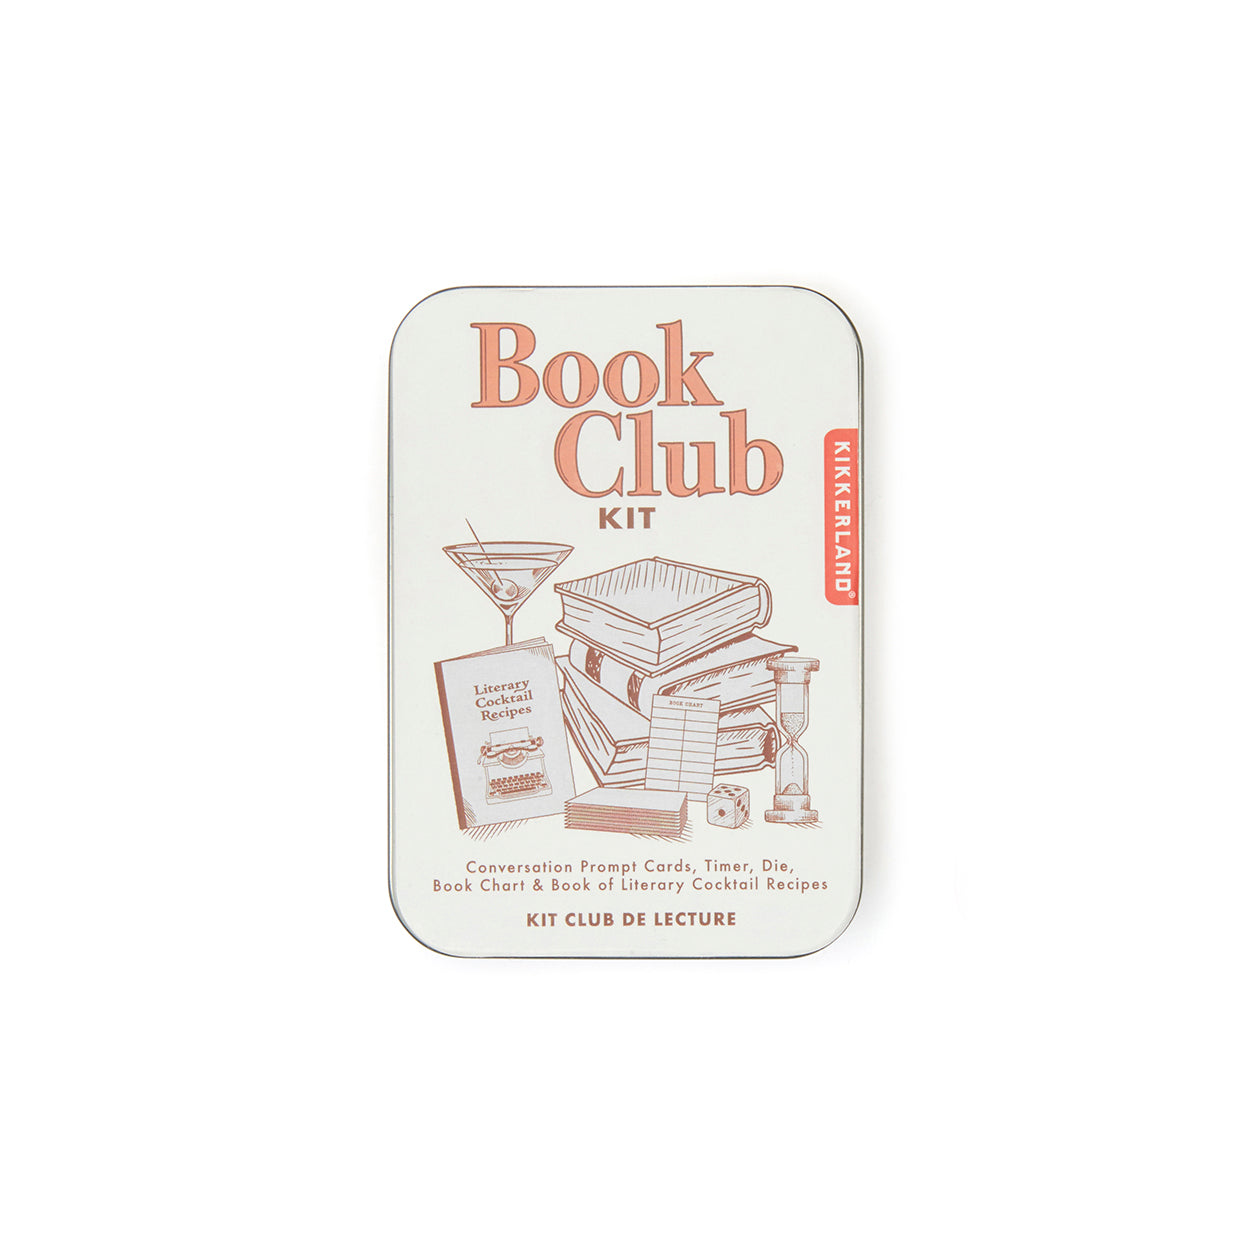 Image of Bookclub Kit in tin